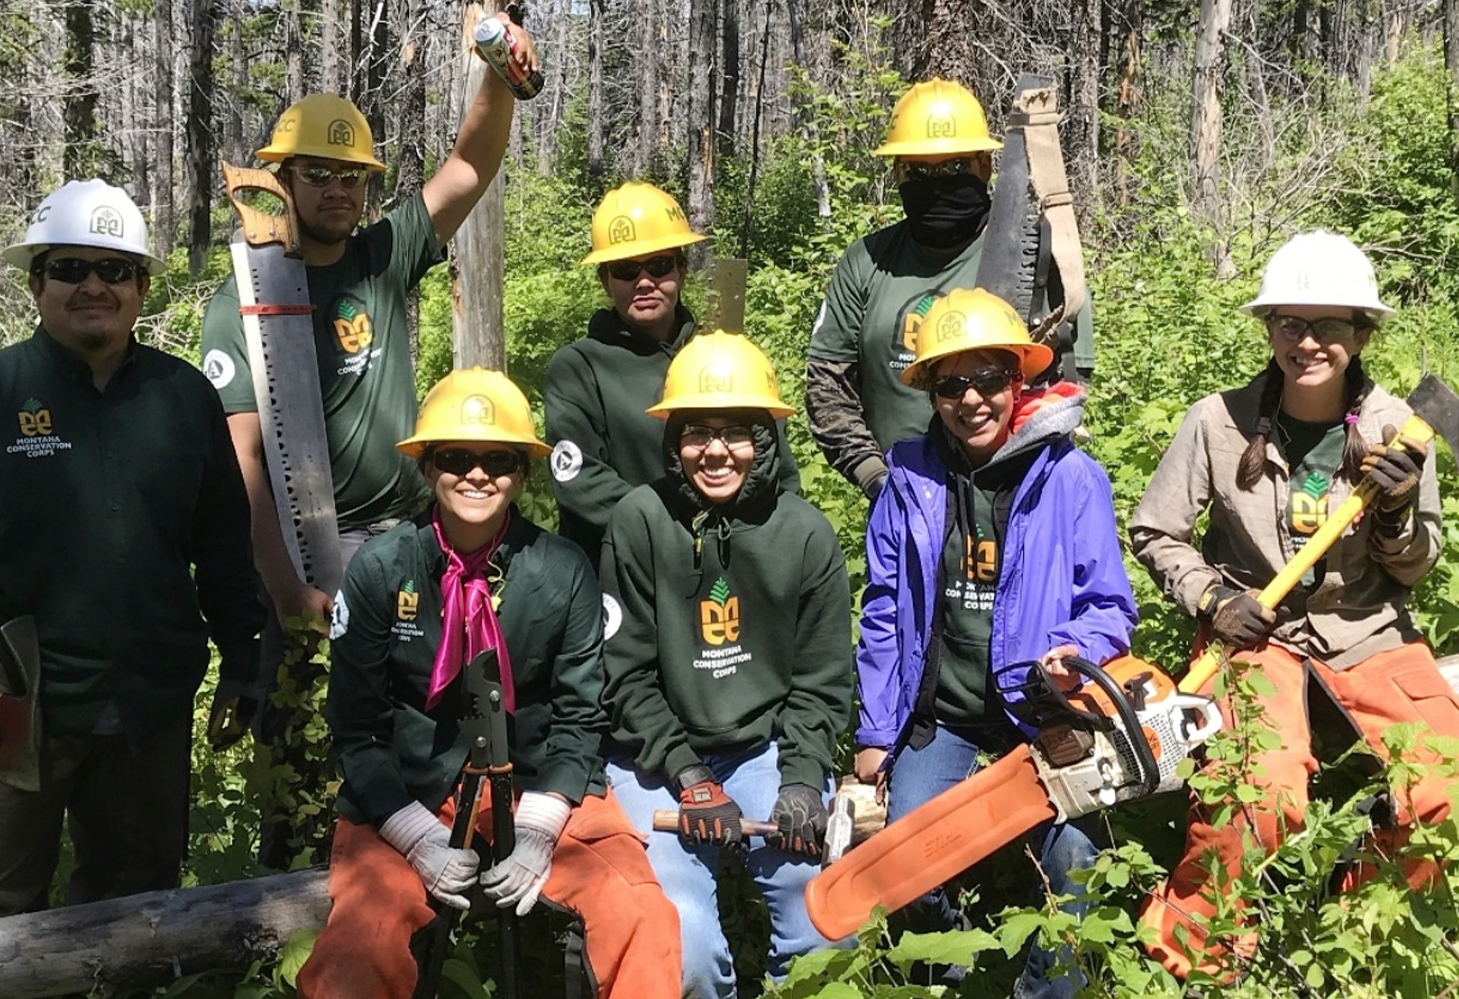 The Piikani Lands Crew fuels reduction team poses for a photo in the forest